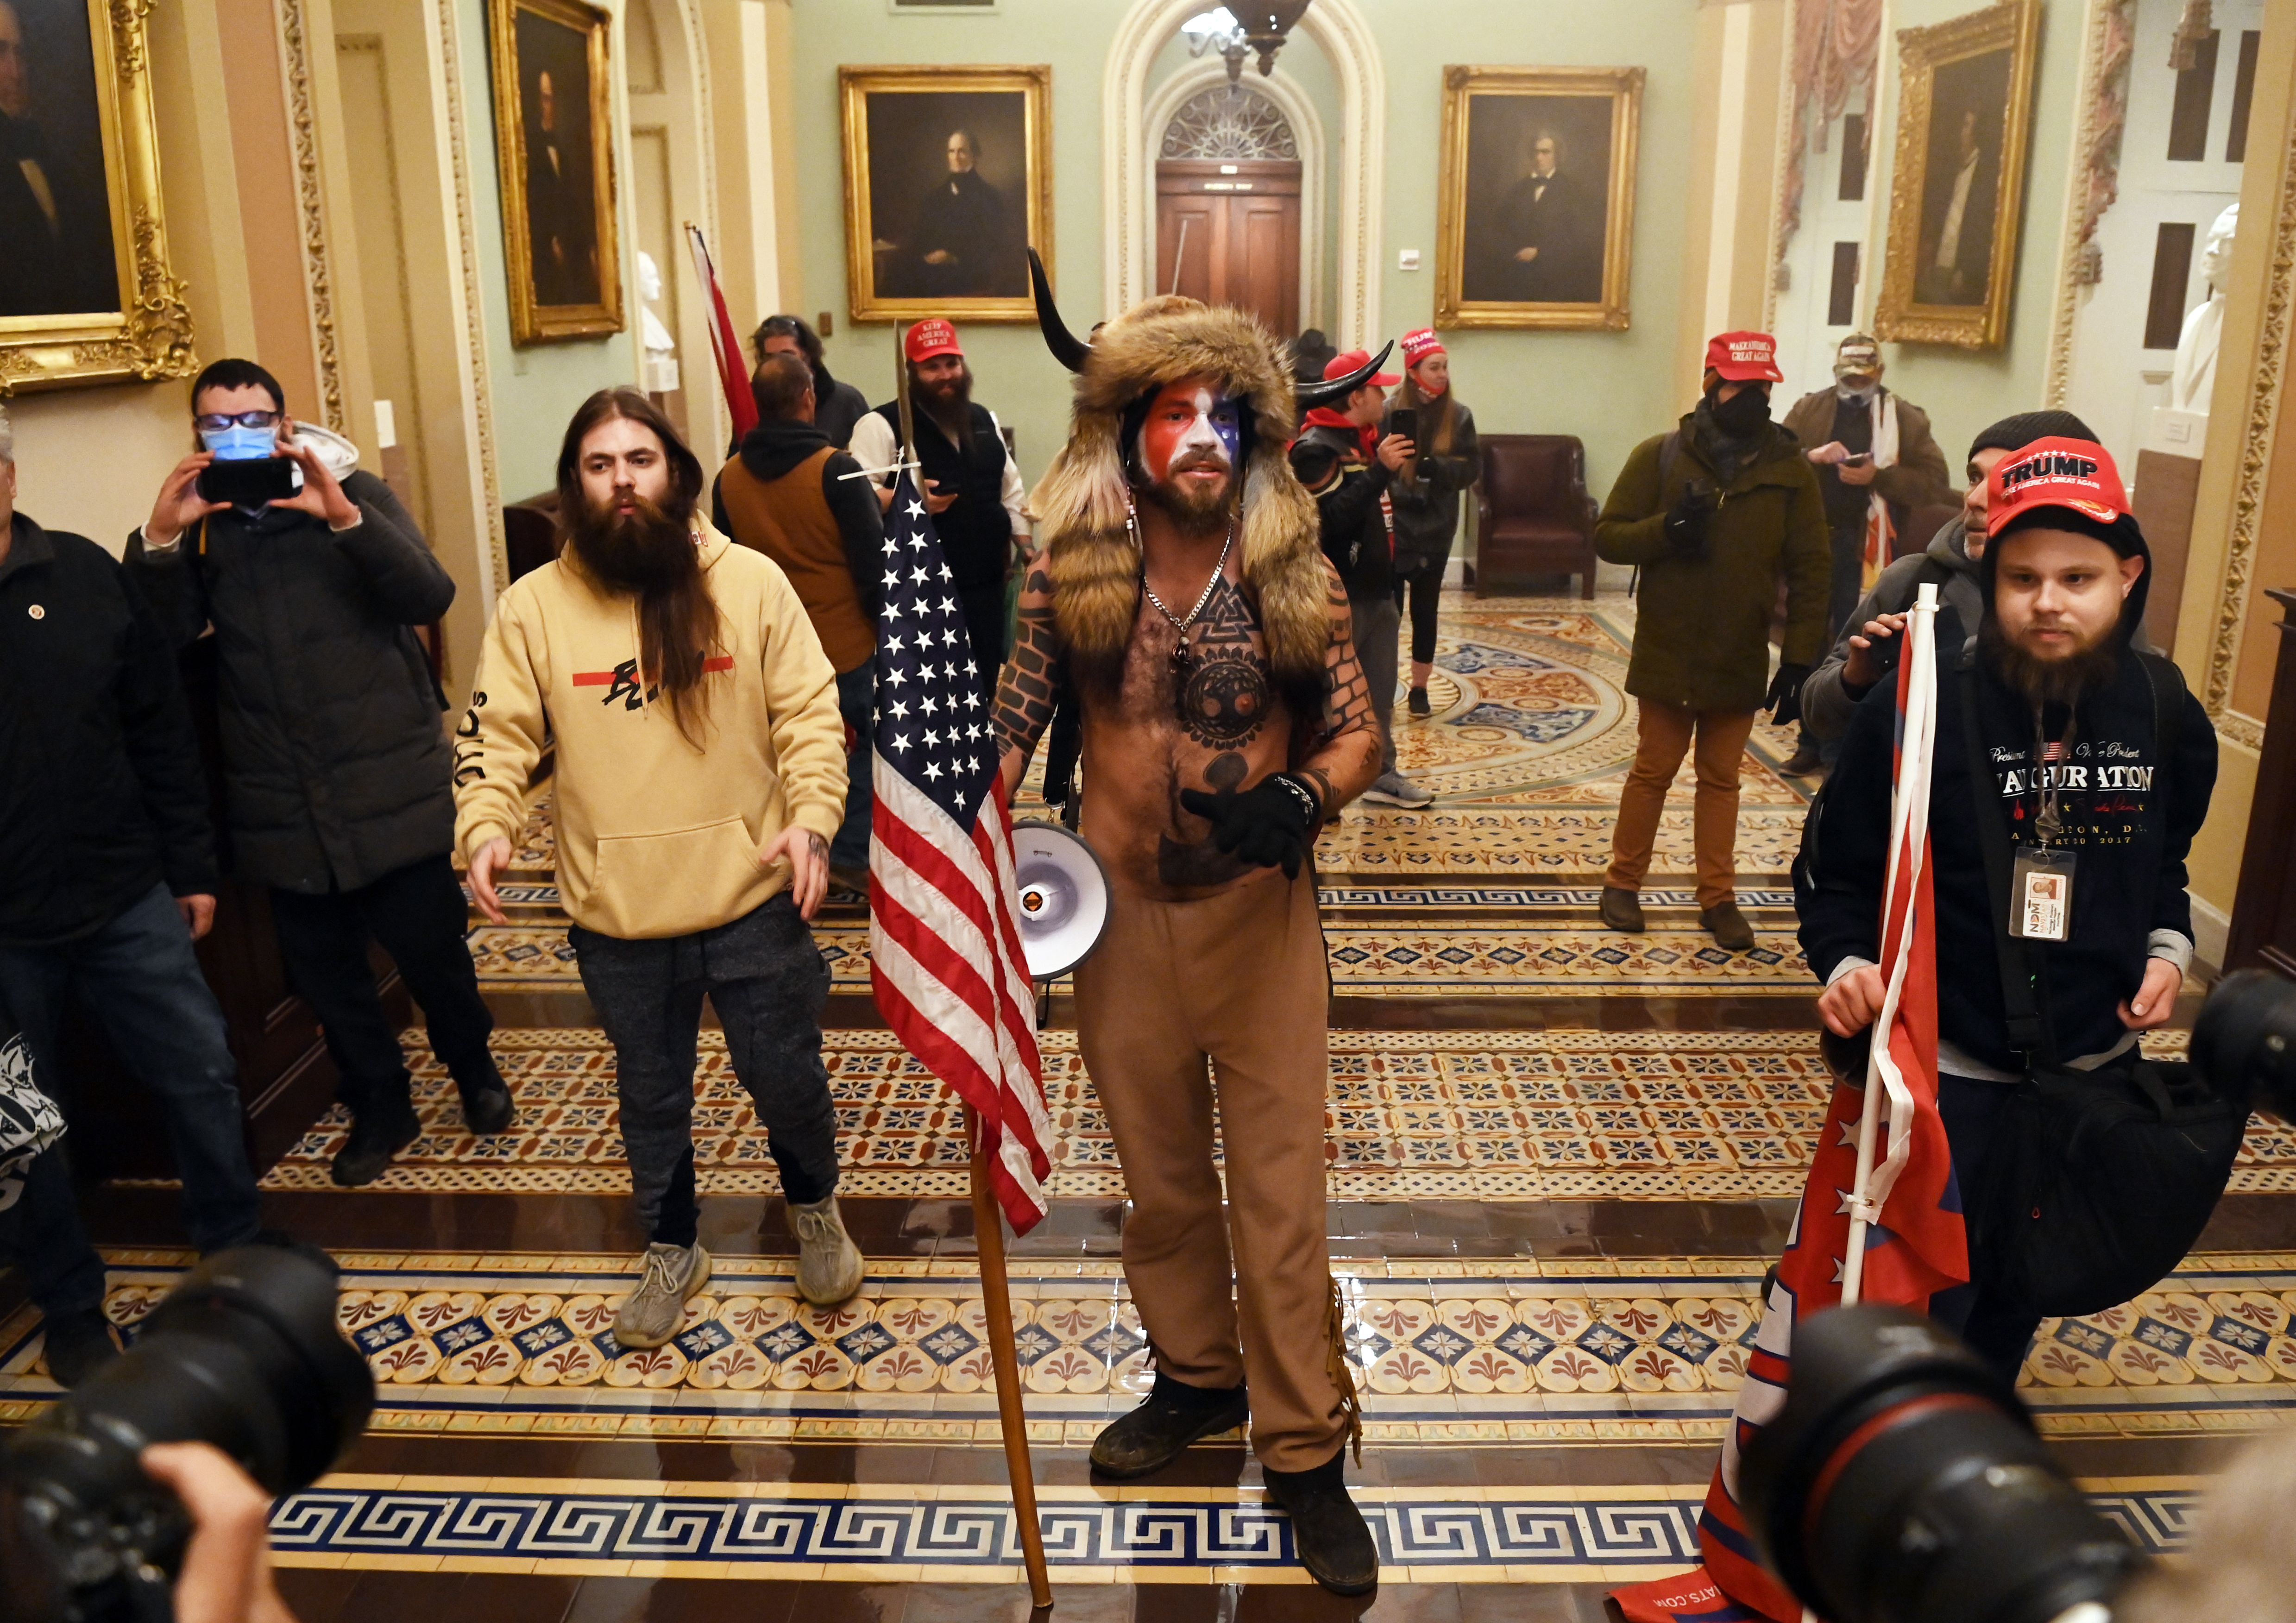 Members of the mob that broke into the US Capitol stand holding flags in a Capitol hallway.